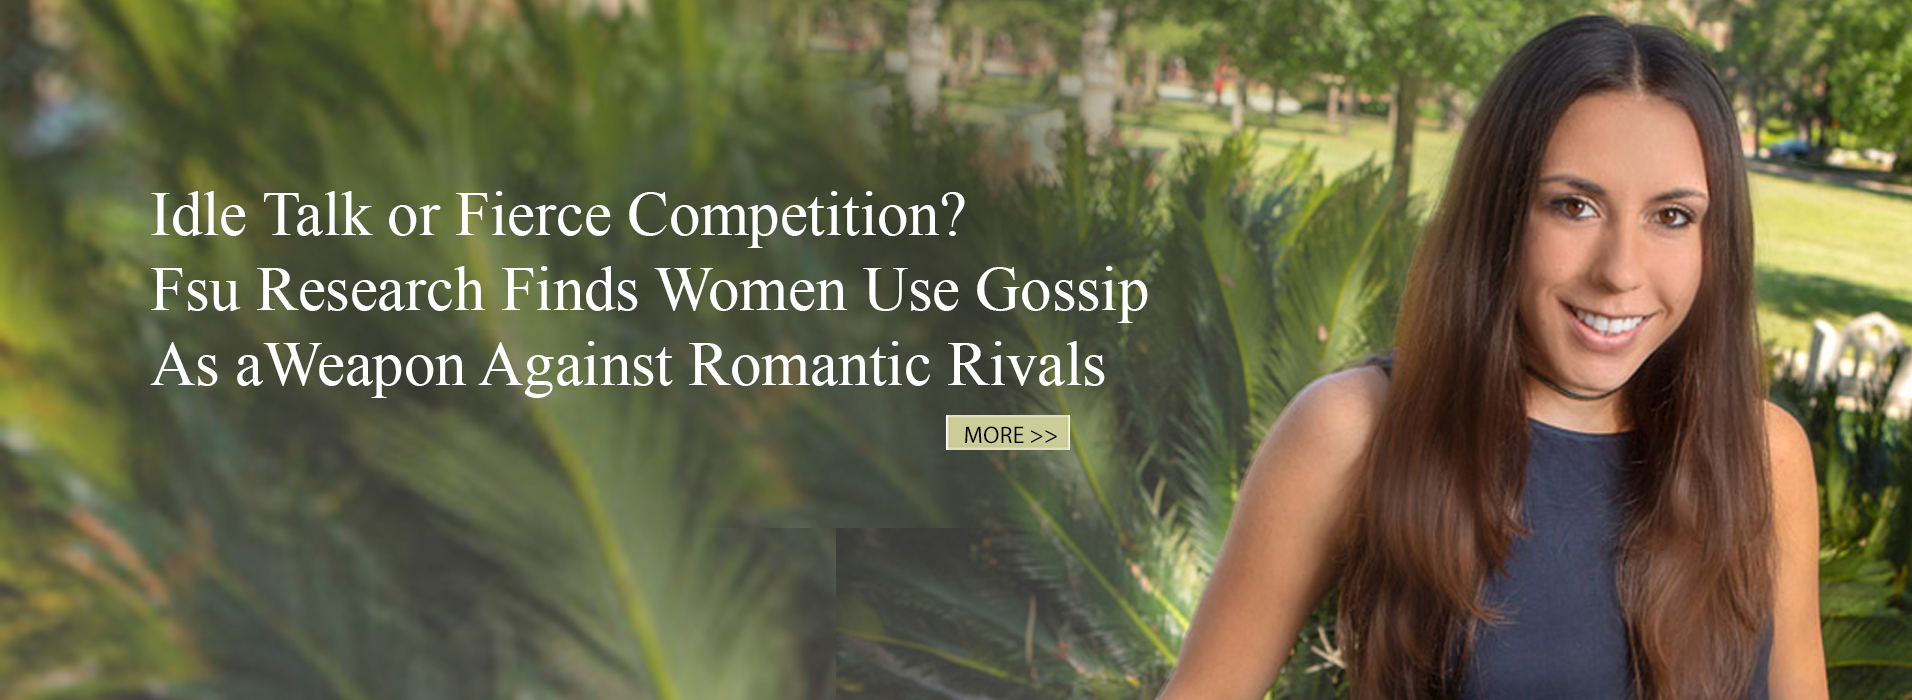 Idle Talk or Fierce Competition? FSU Research Finds Women Use Gossip as a Weapon Against Romantic Rivals